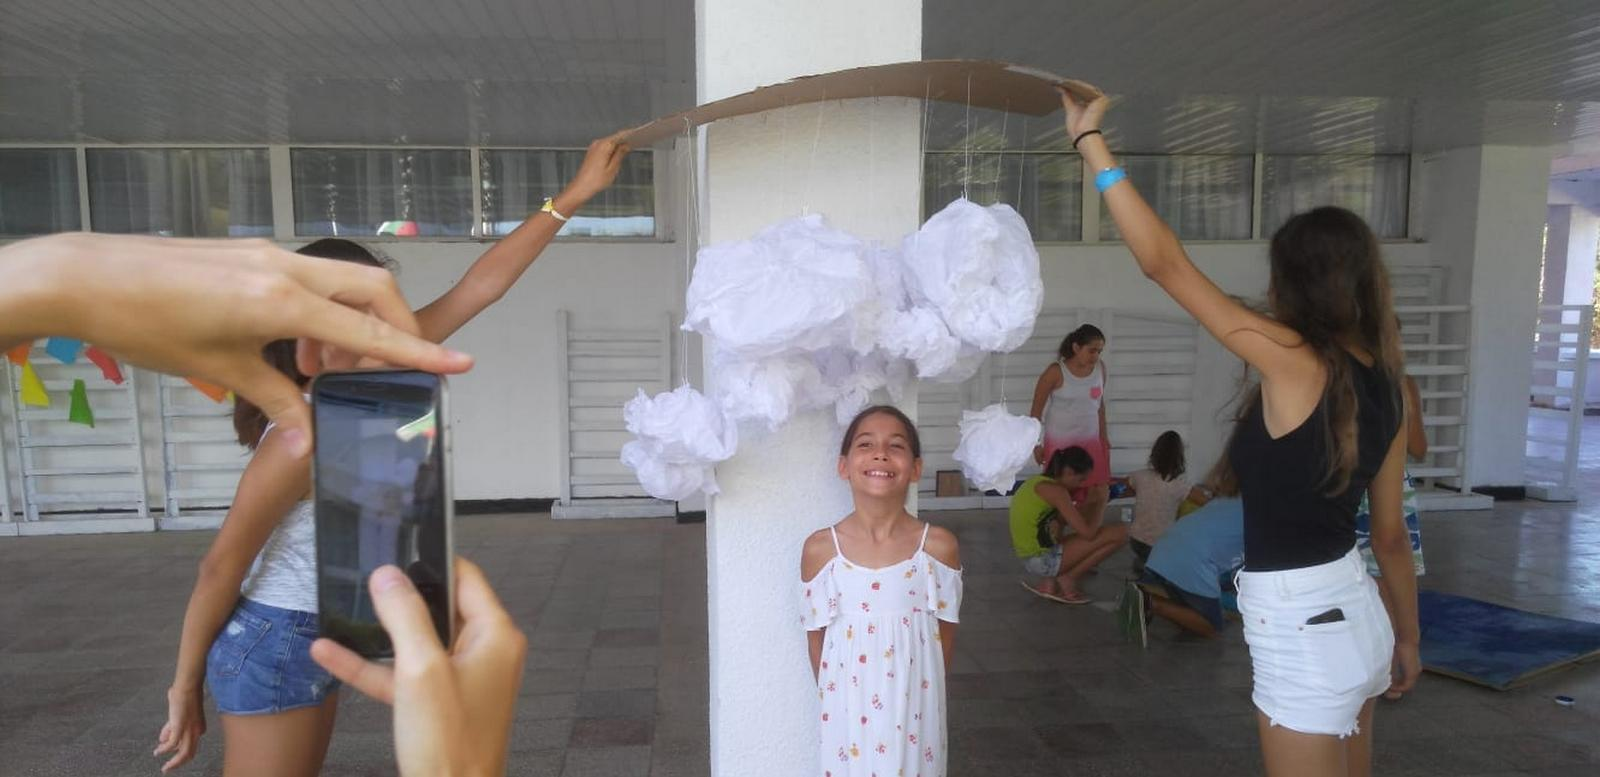 Z camp, Day 20 - Artс and crafts - a little girl with hanging, paper clouds above the head